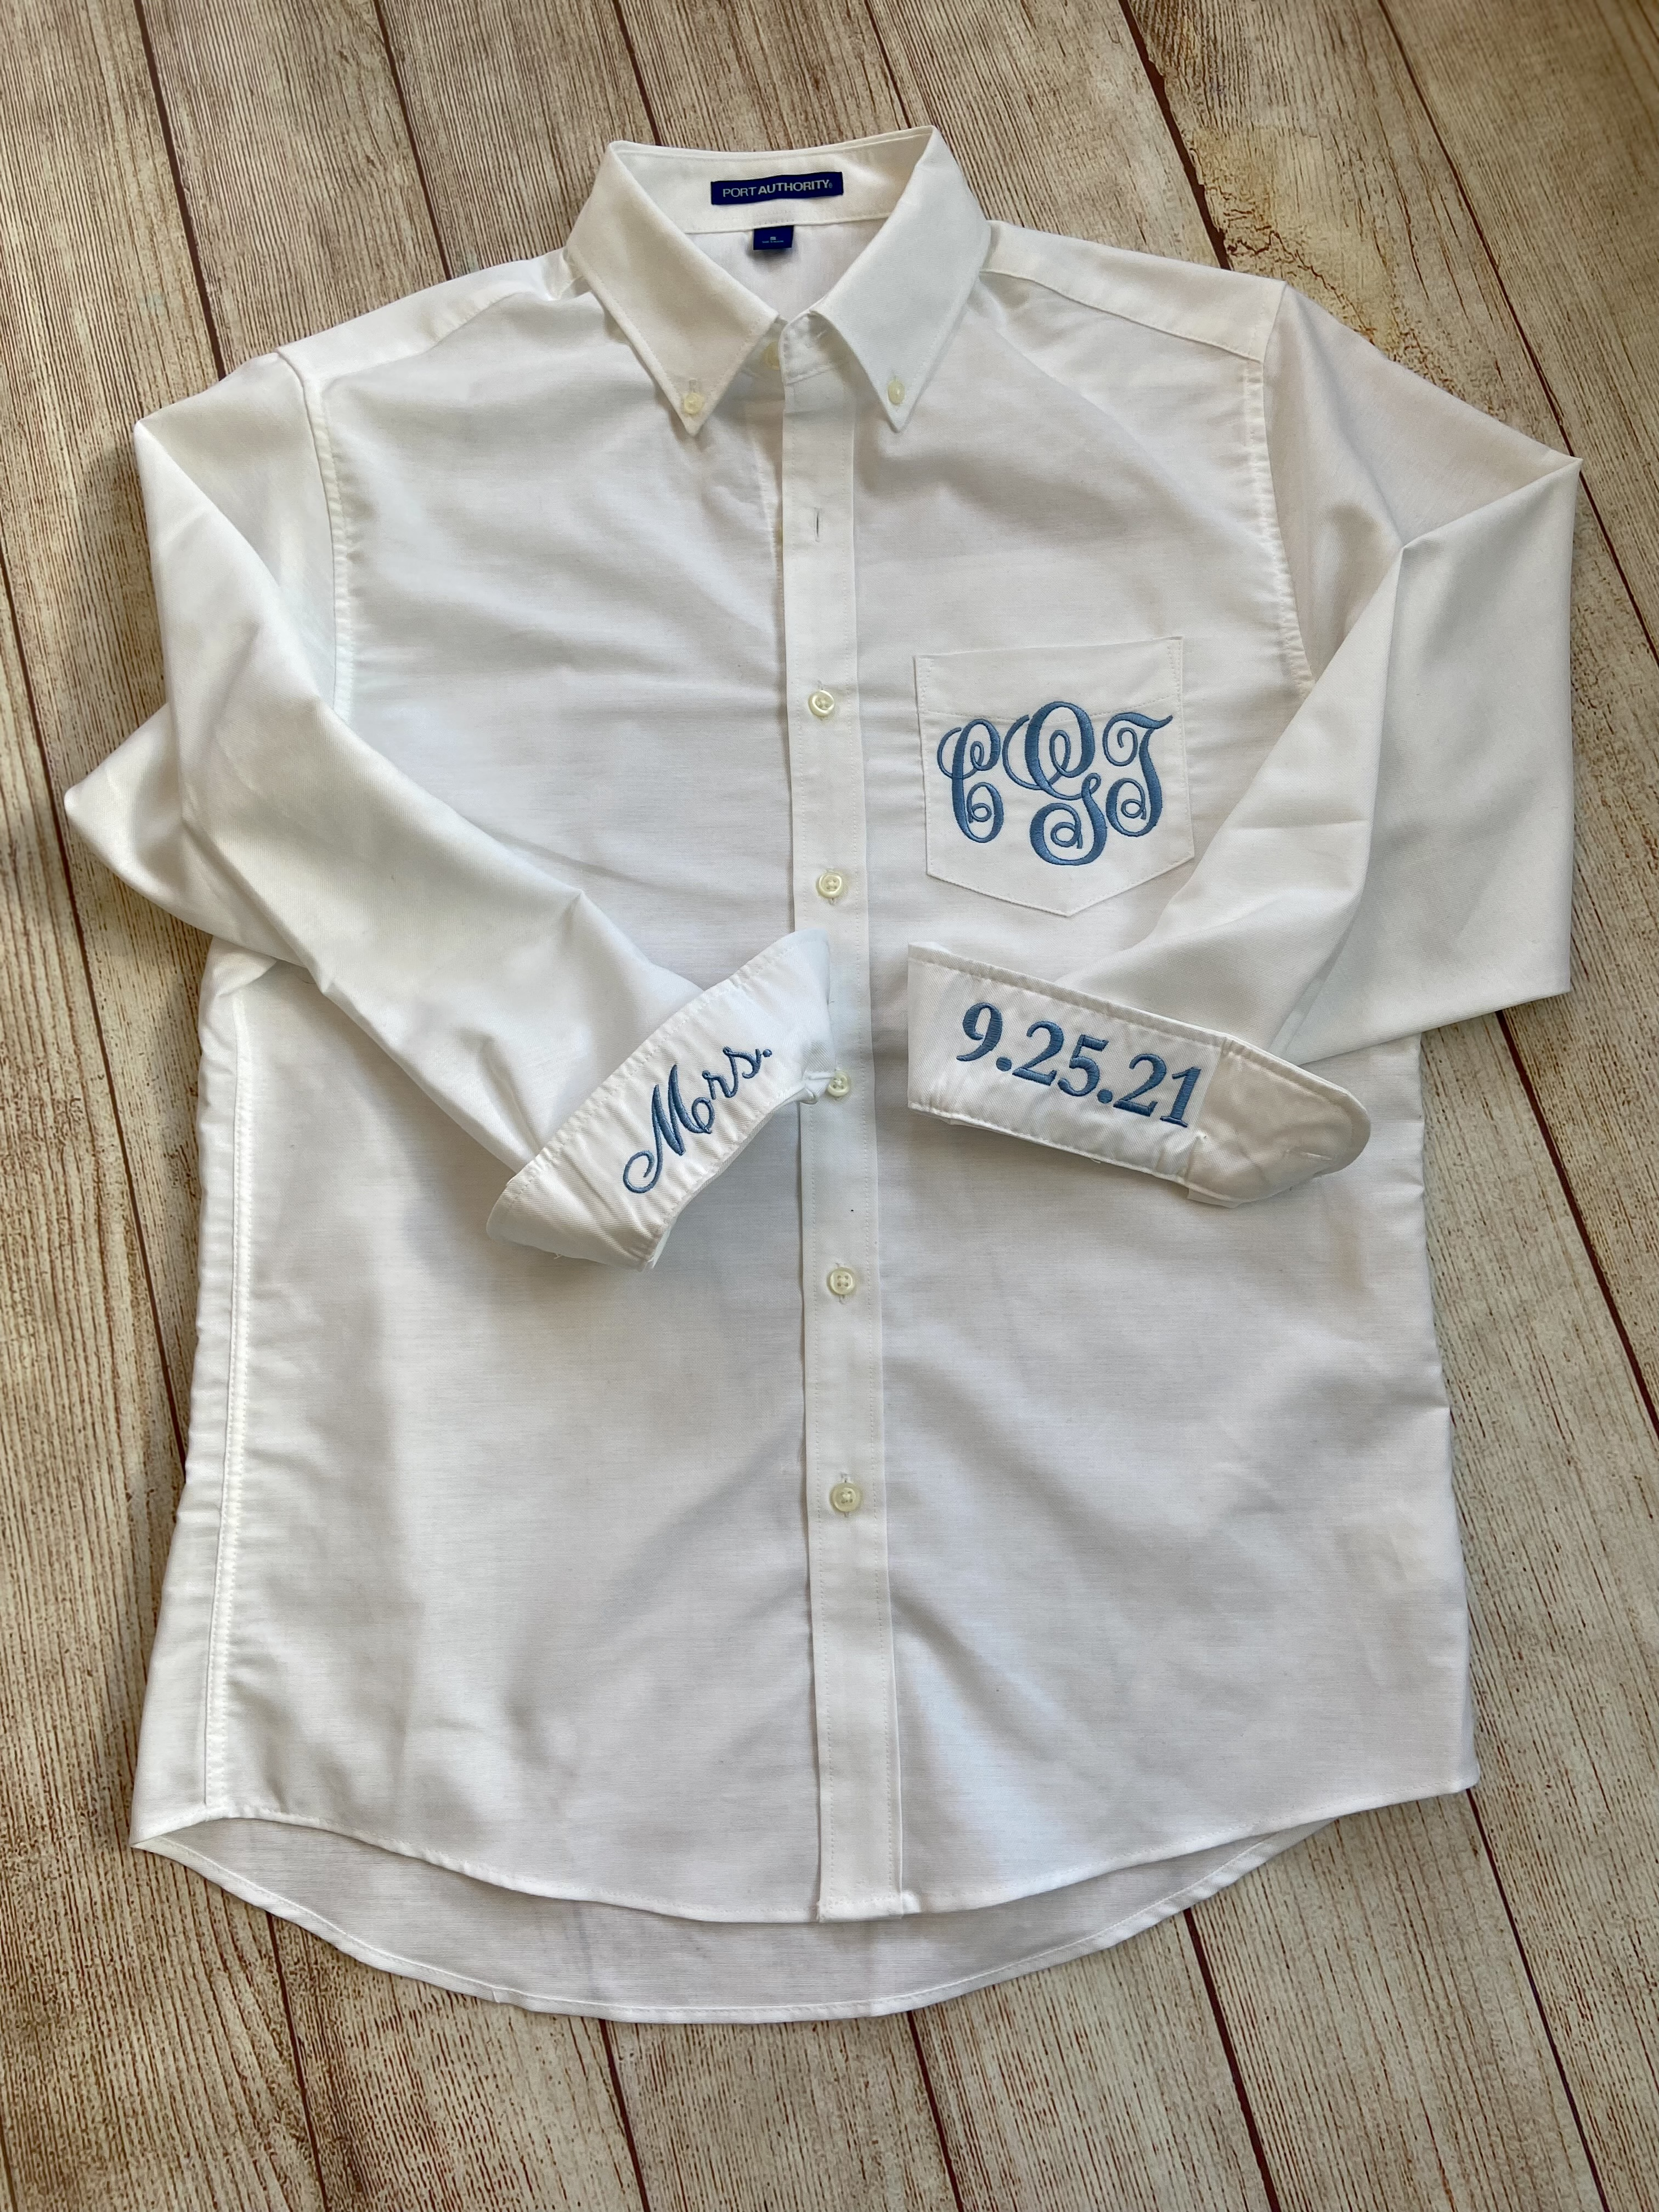 Monogram Oxford -white with light blue stitching by Wicked Stitches